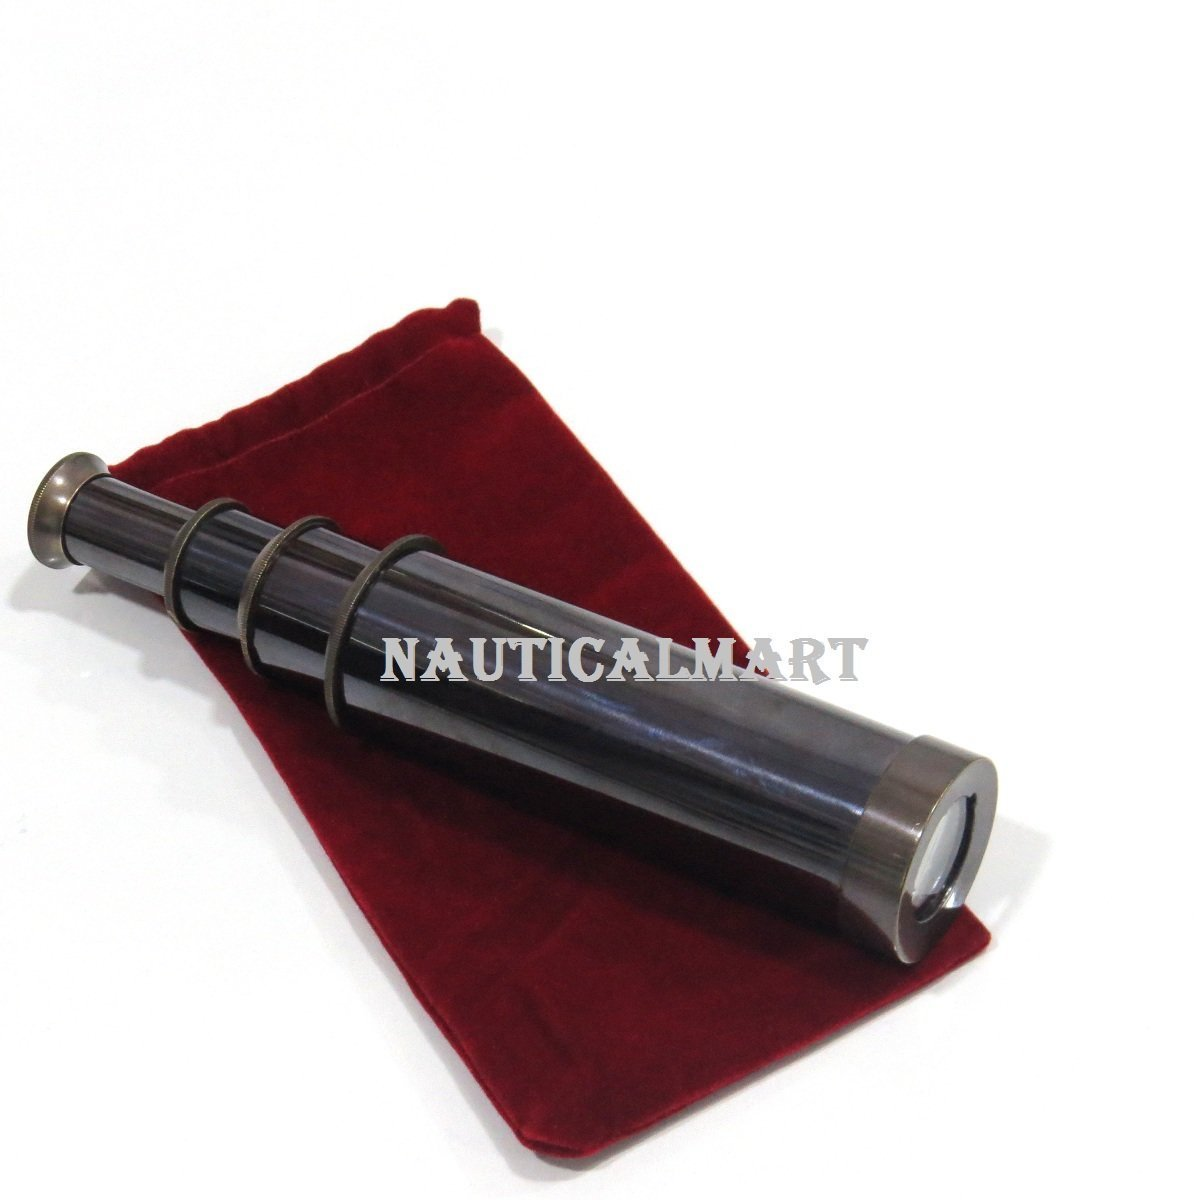 NM012979A Brass Telescope - Case Pack of 12